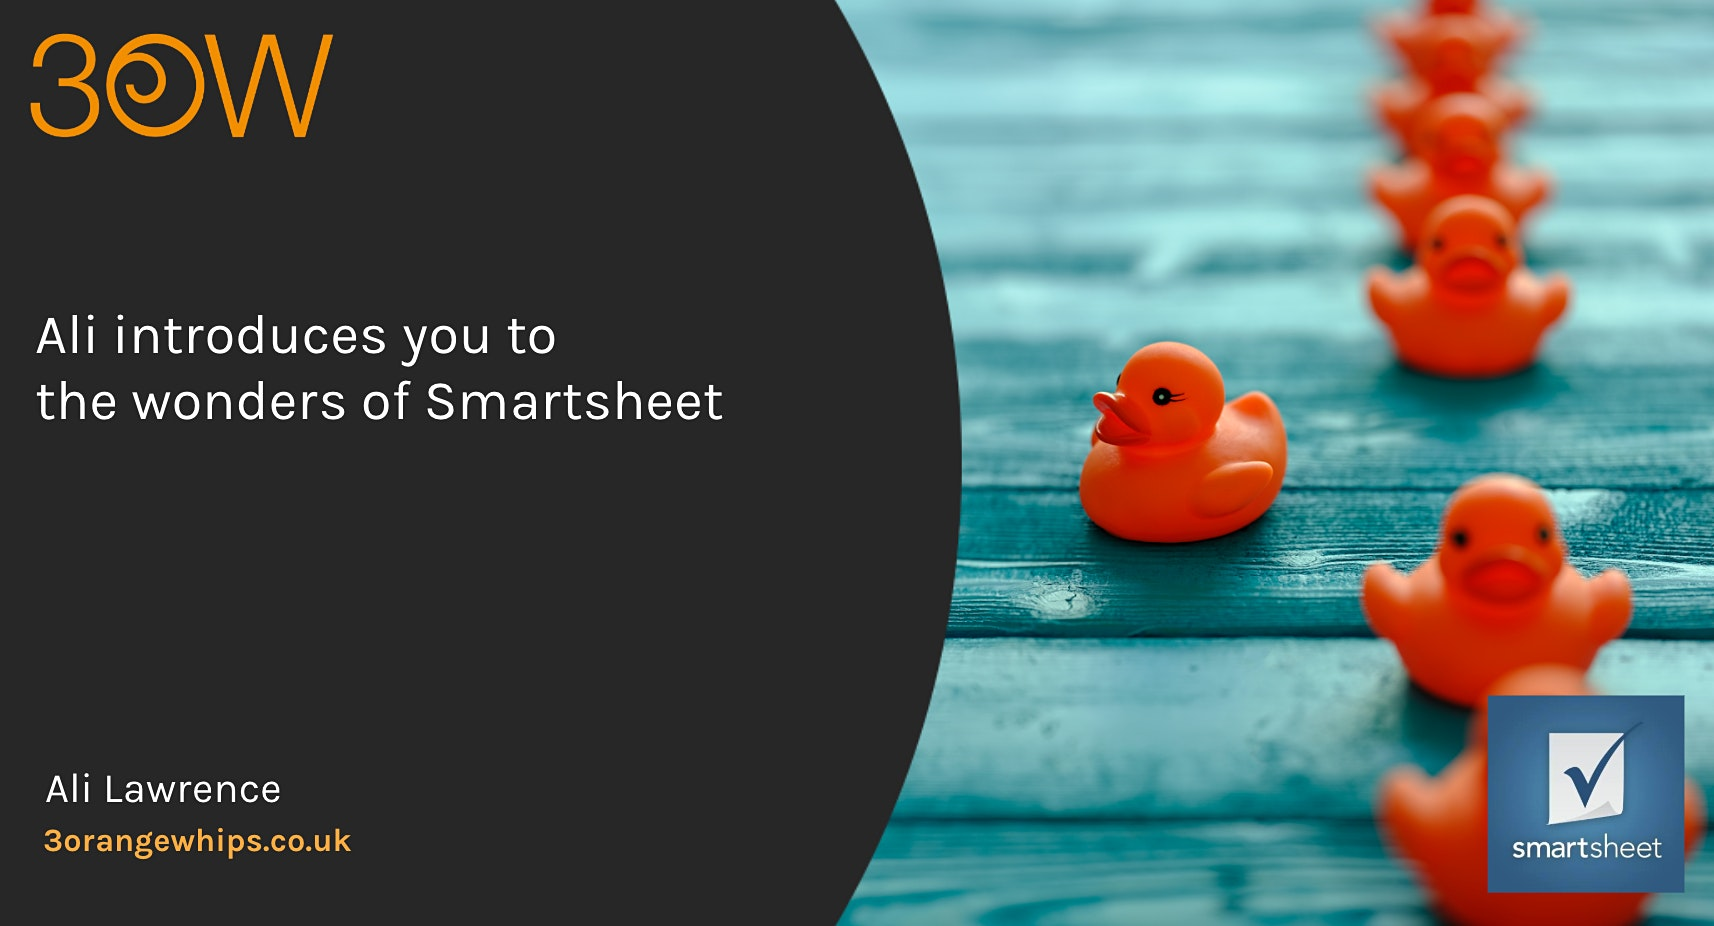 Ali introduces you to the wonders of Smartsheet ®